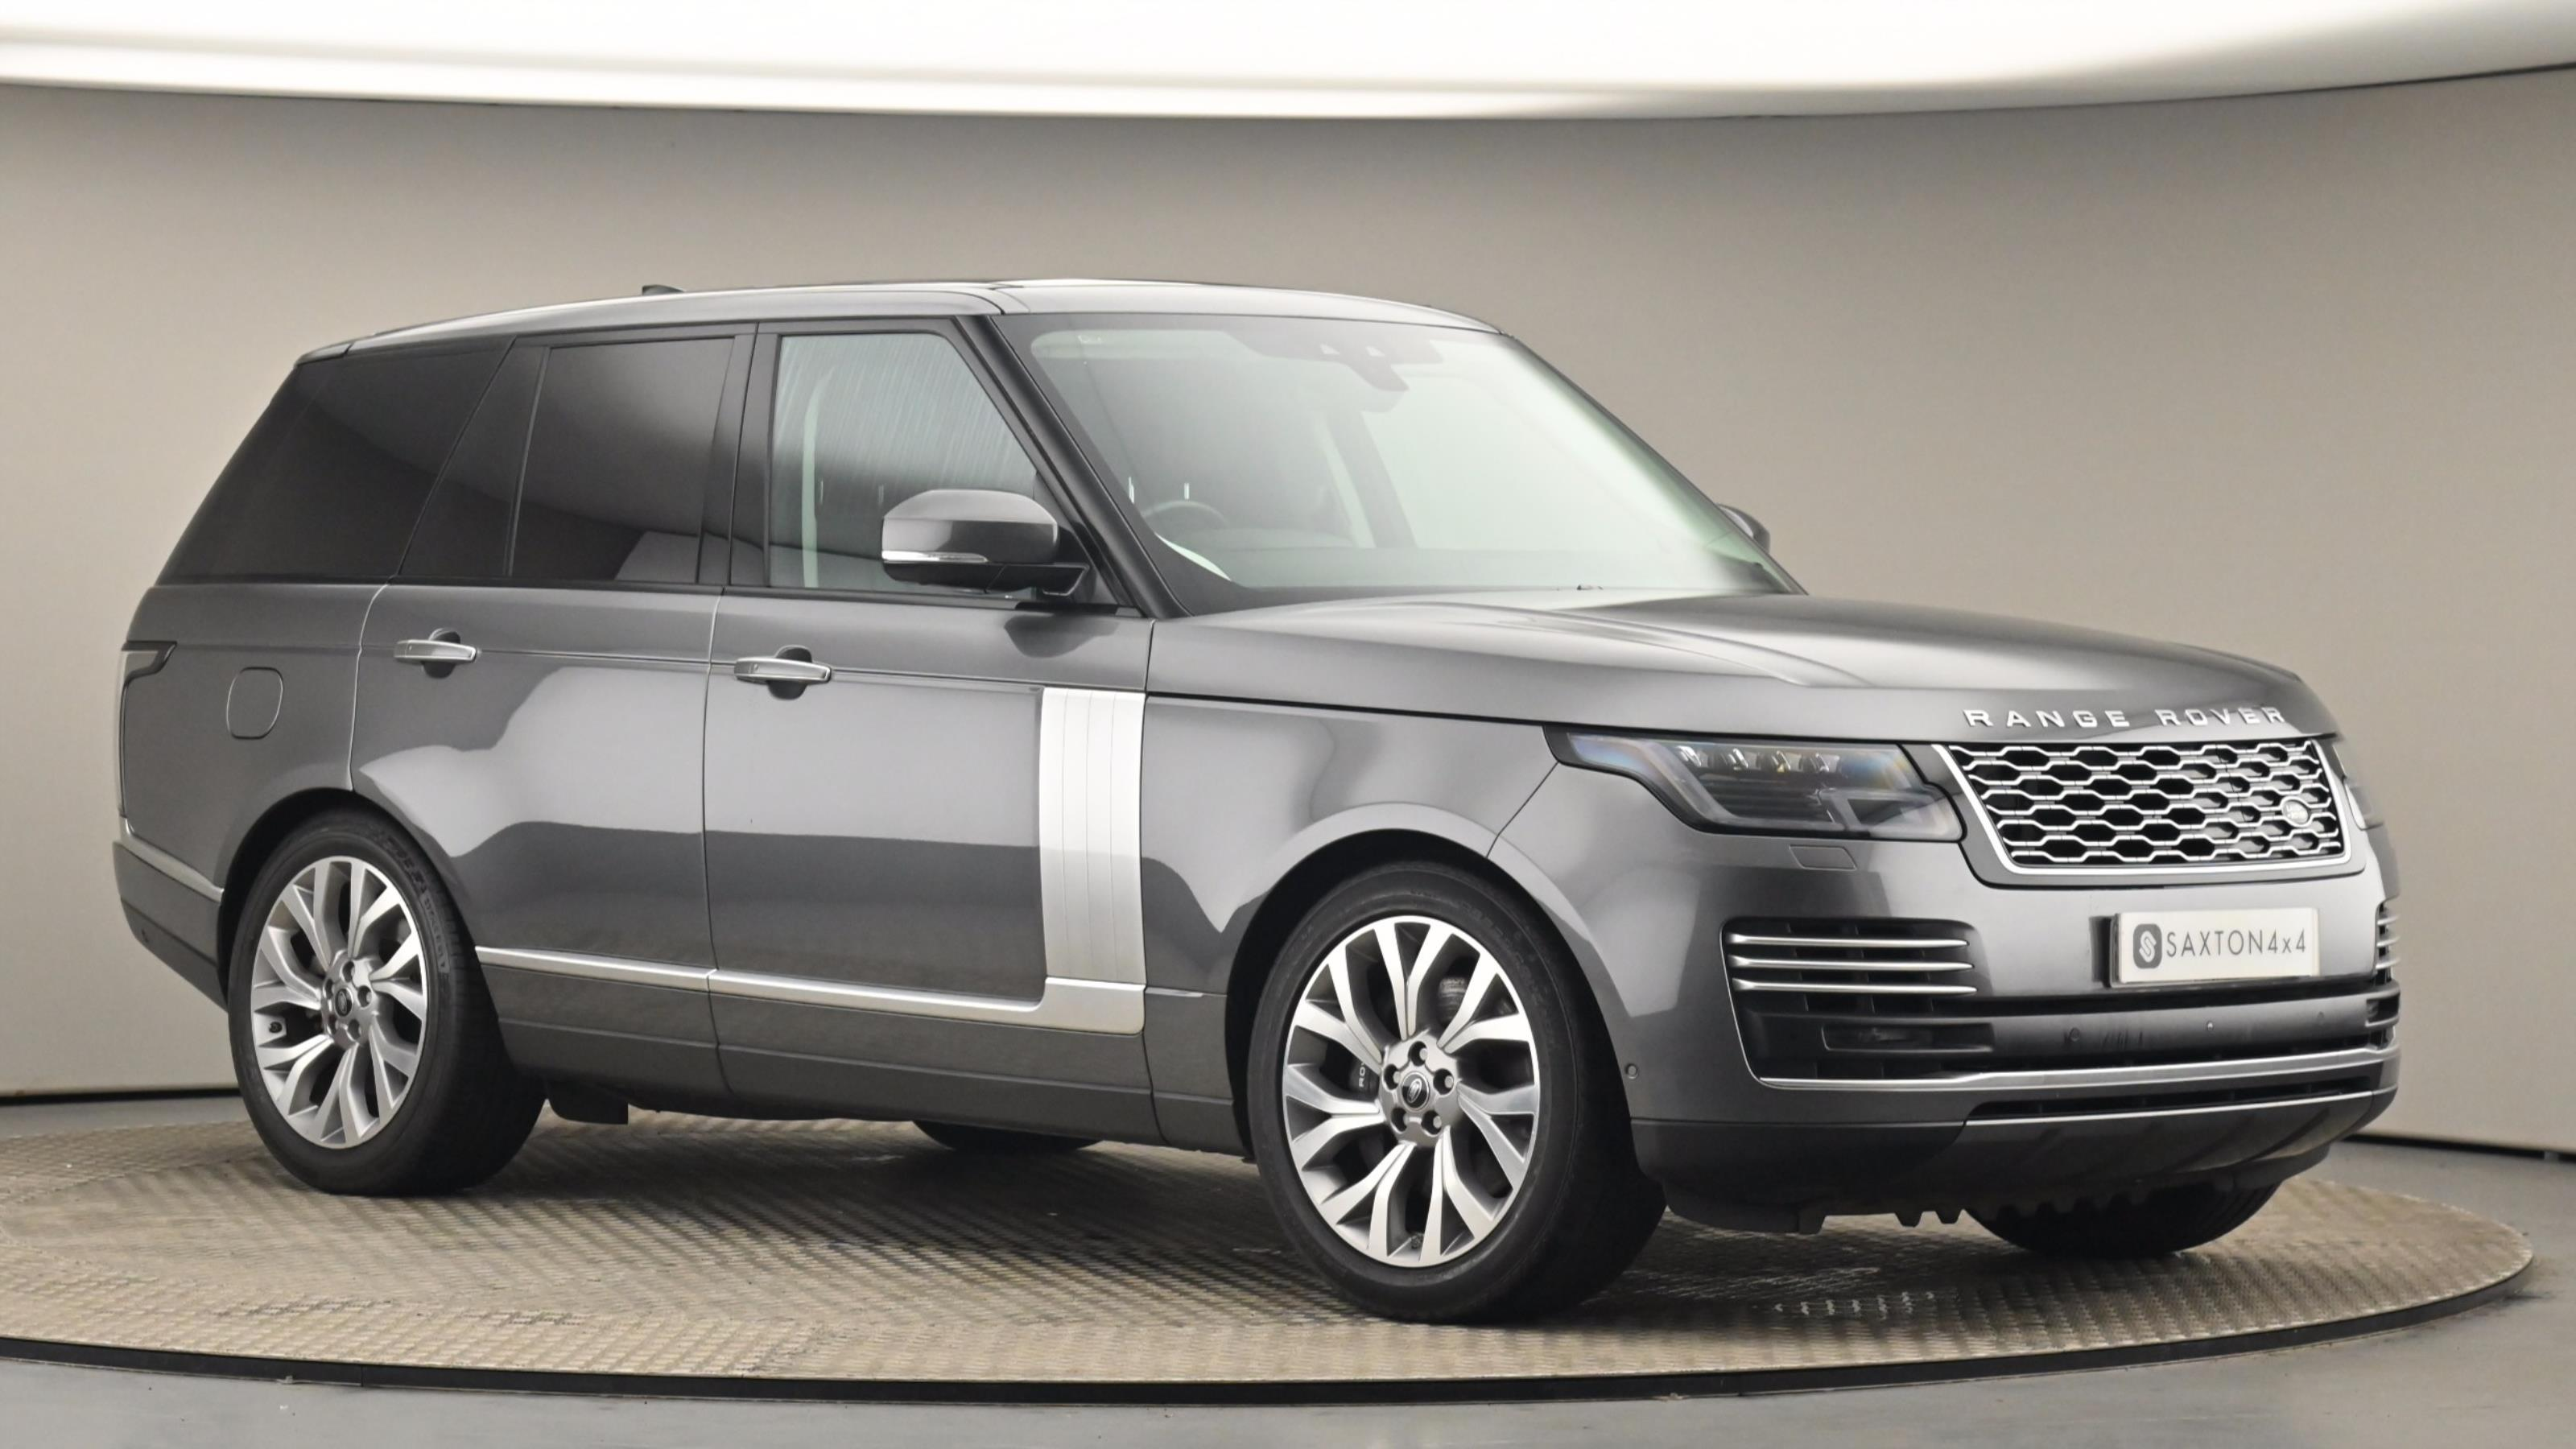 Used 2018 Land Rover RANGE ROVER 2.0 P400e Autobiography 4dr Auto GREY at Saxton4x4